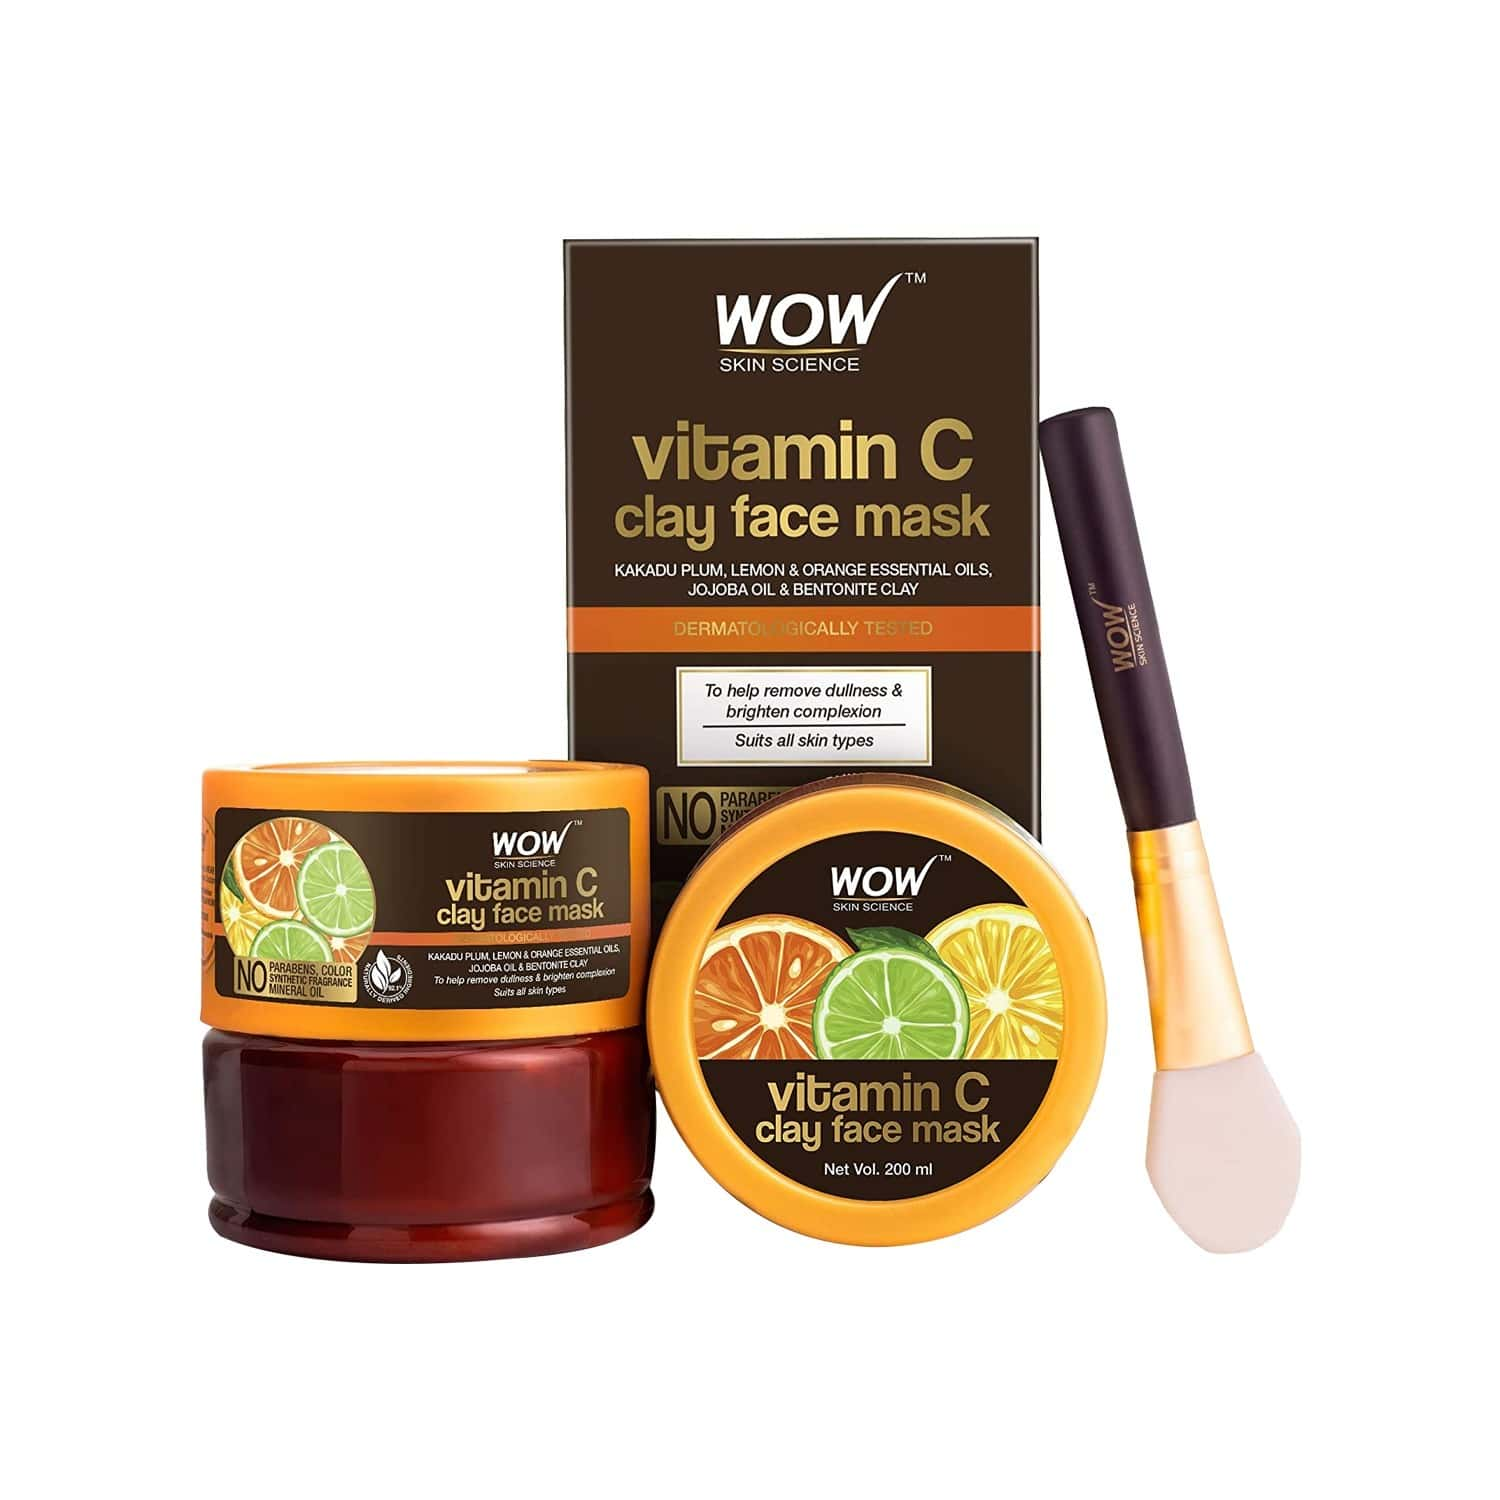 Wow Skin Science Vitamin C Face Mask - 200 Ml